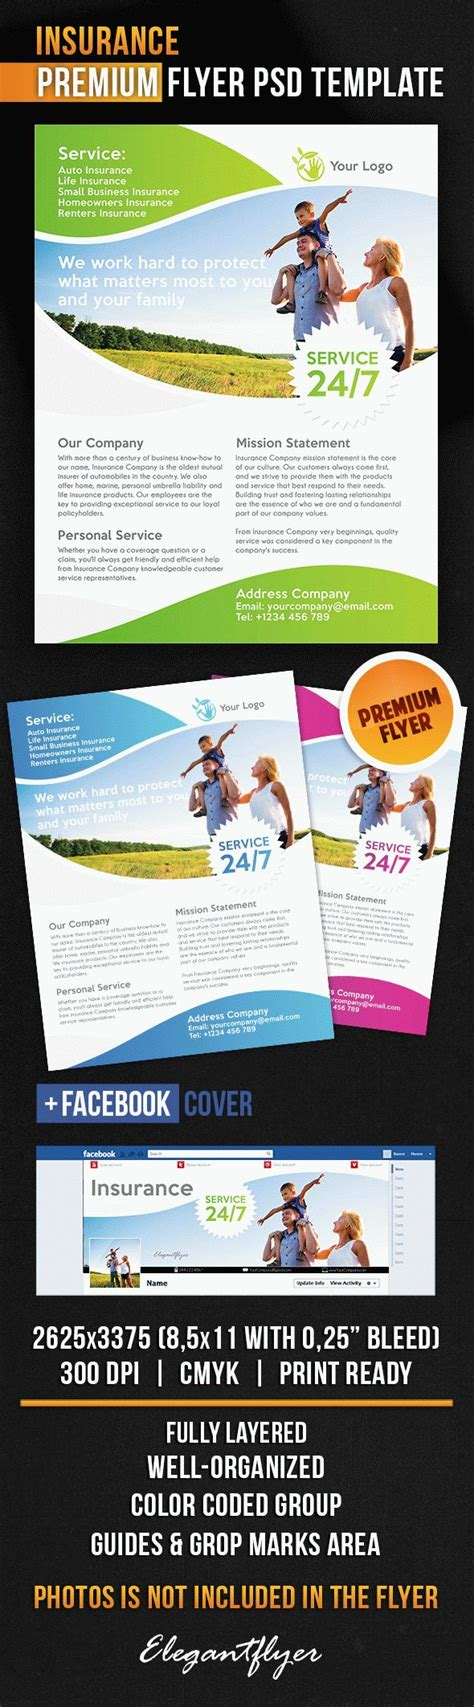 Flyer Template For Insurance By Elegantflyer Insurance Flyer Templates